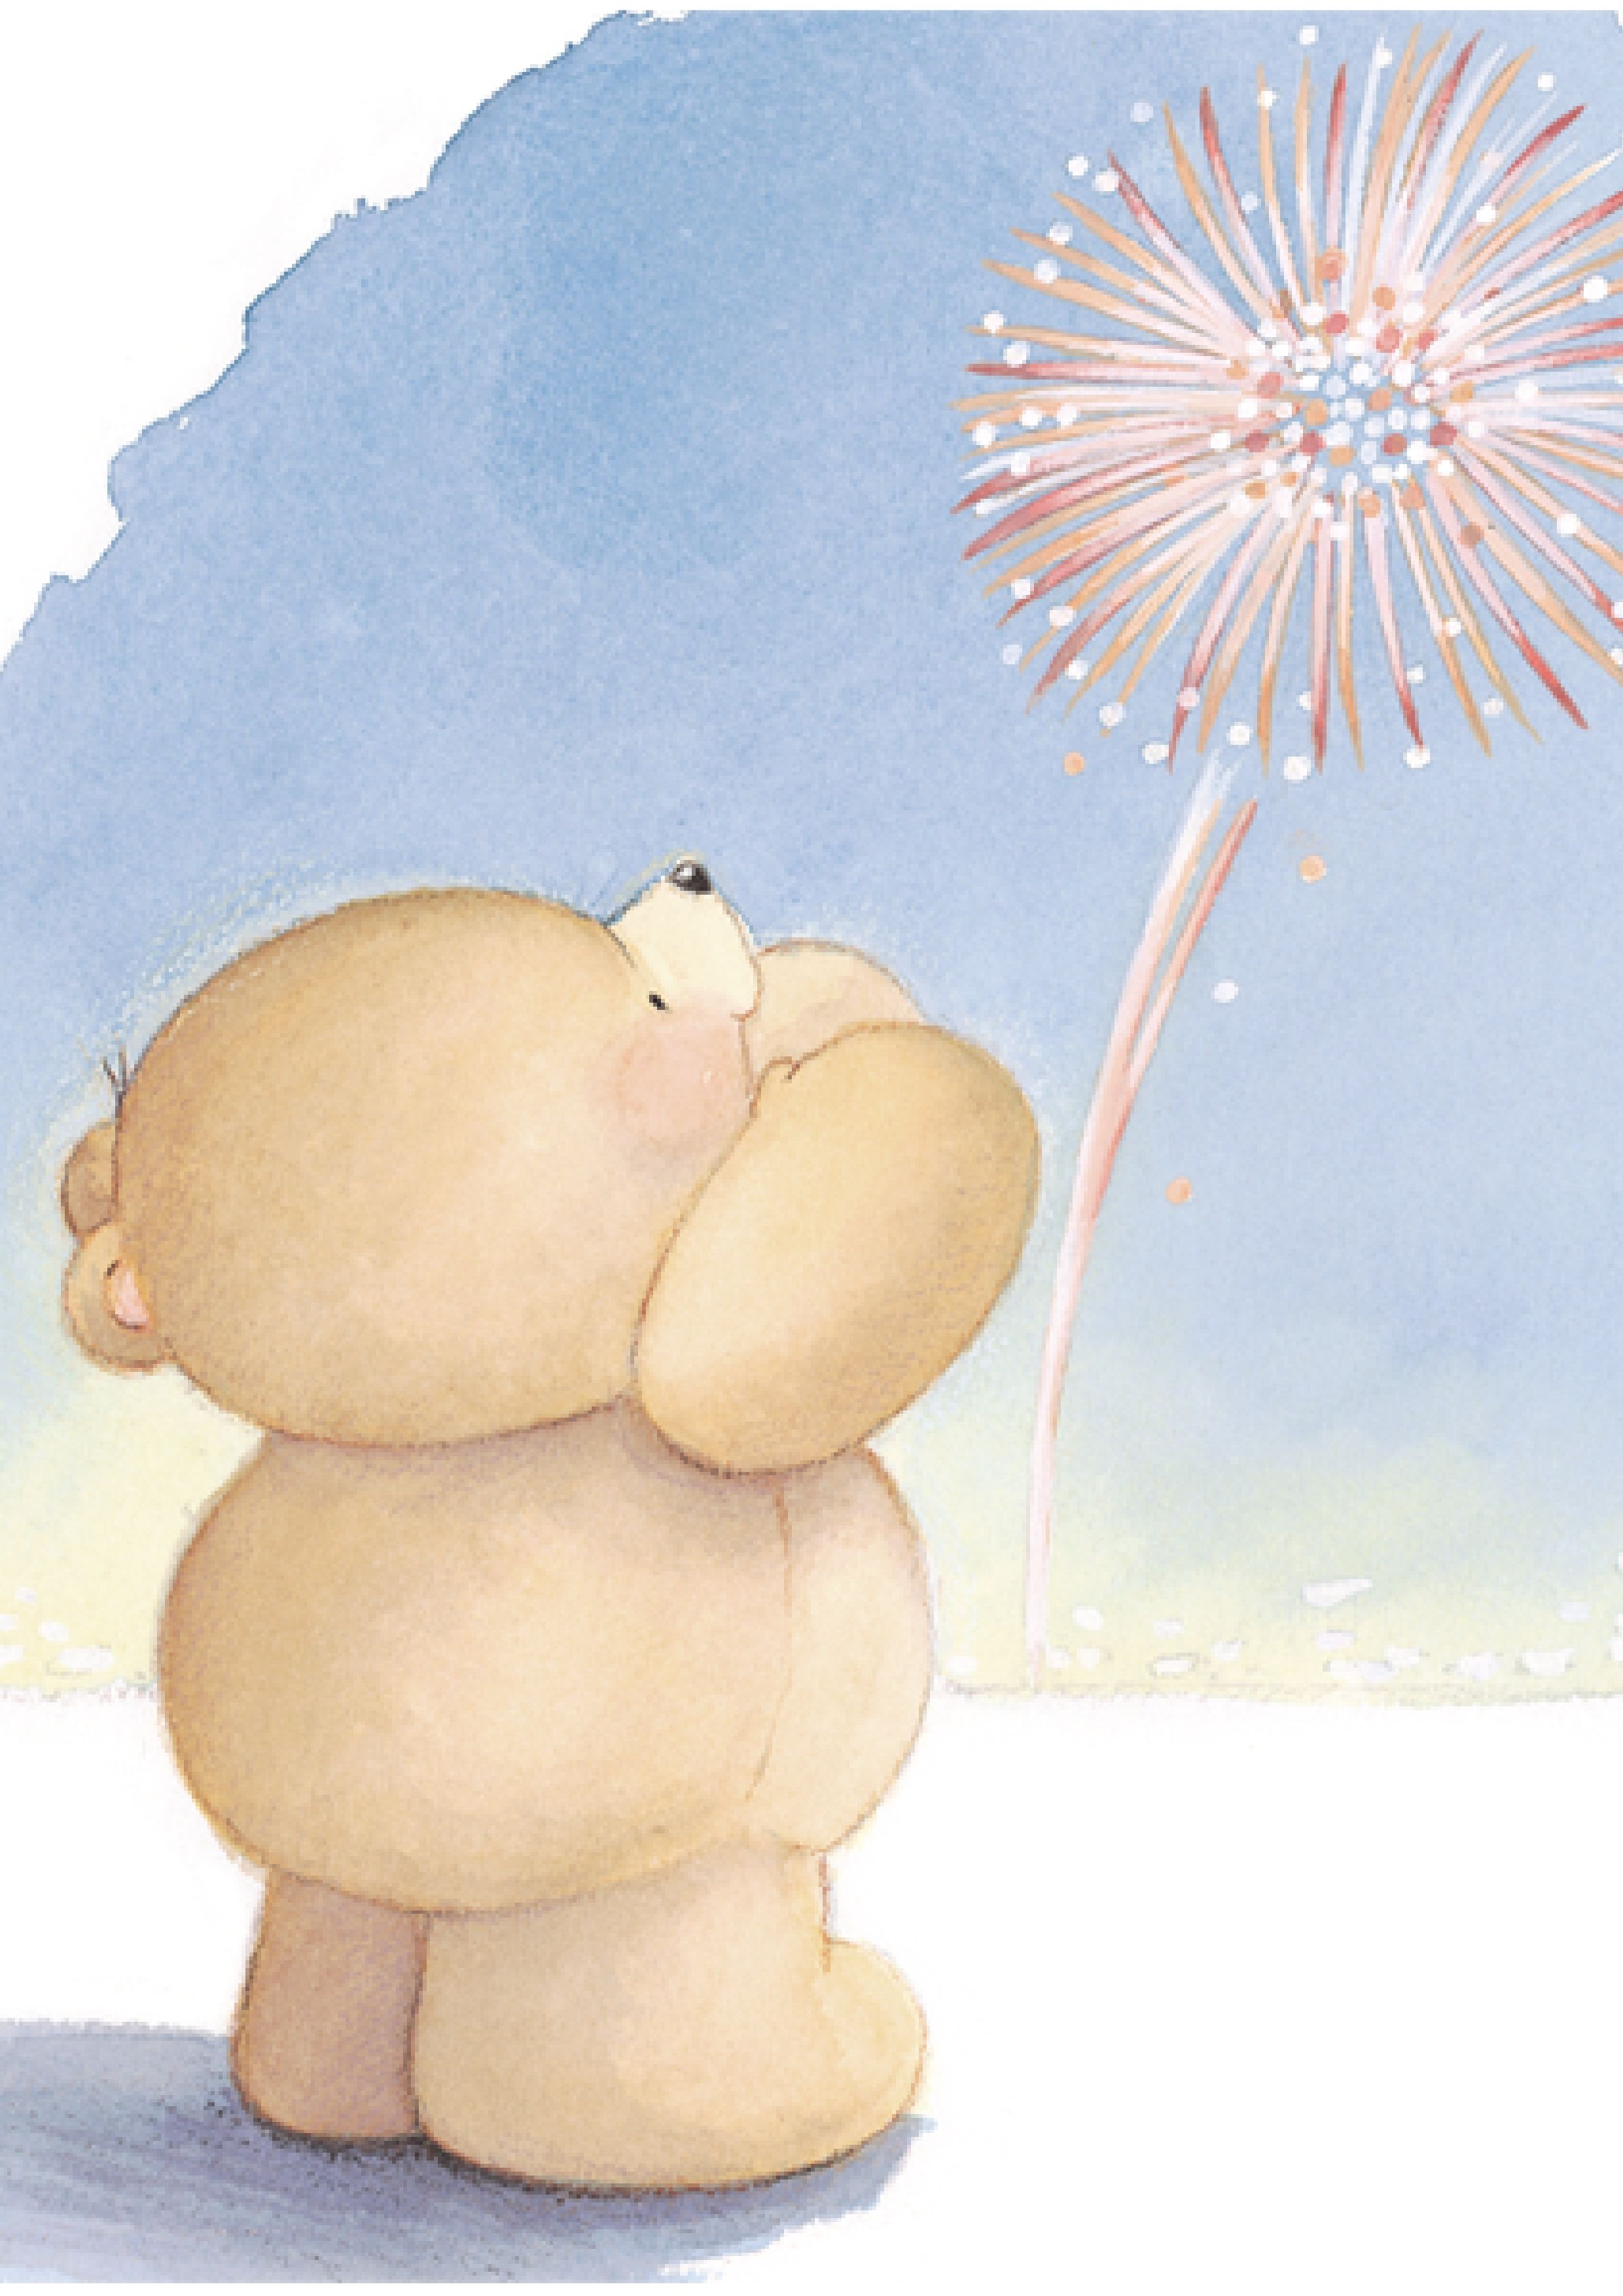 Foreverfriends teddy celebration forever friends pinterest forever friends teddy making a wish and sending it too someone fandeluxe Ebook collections